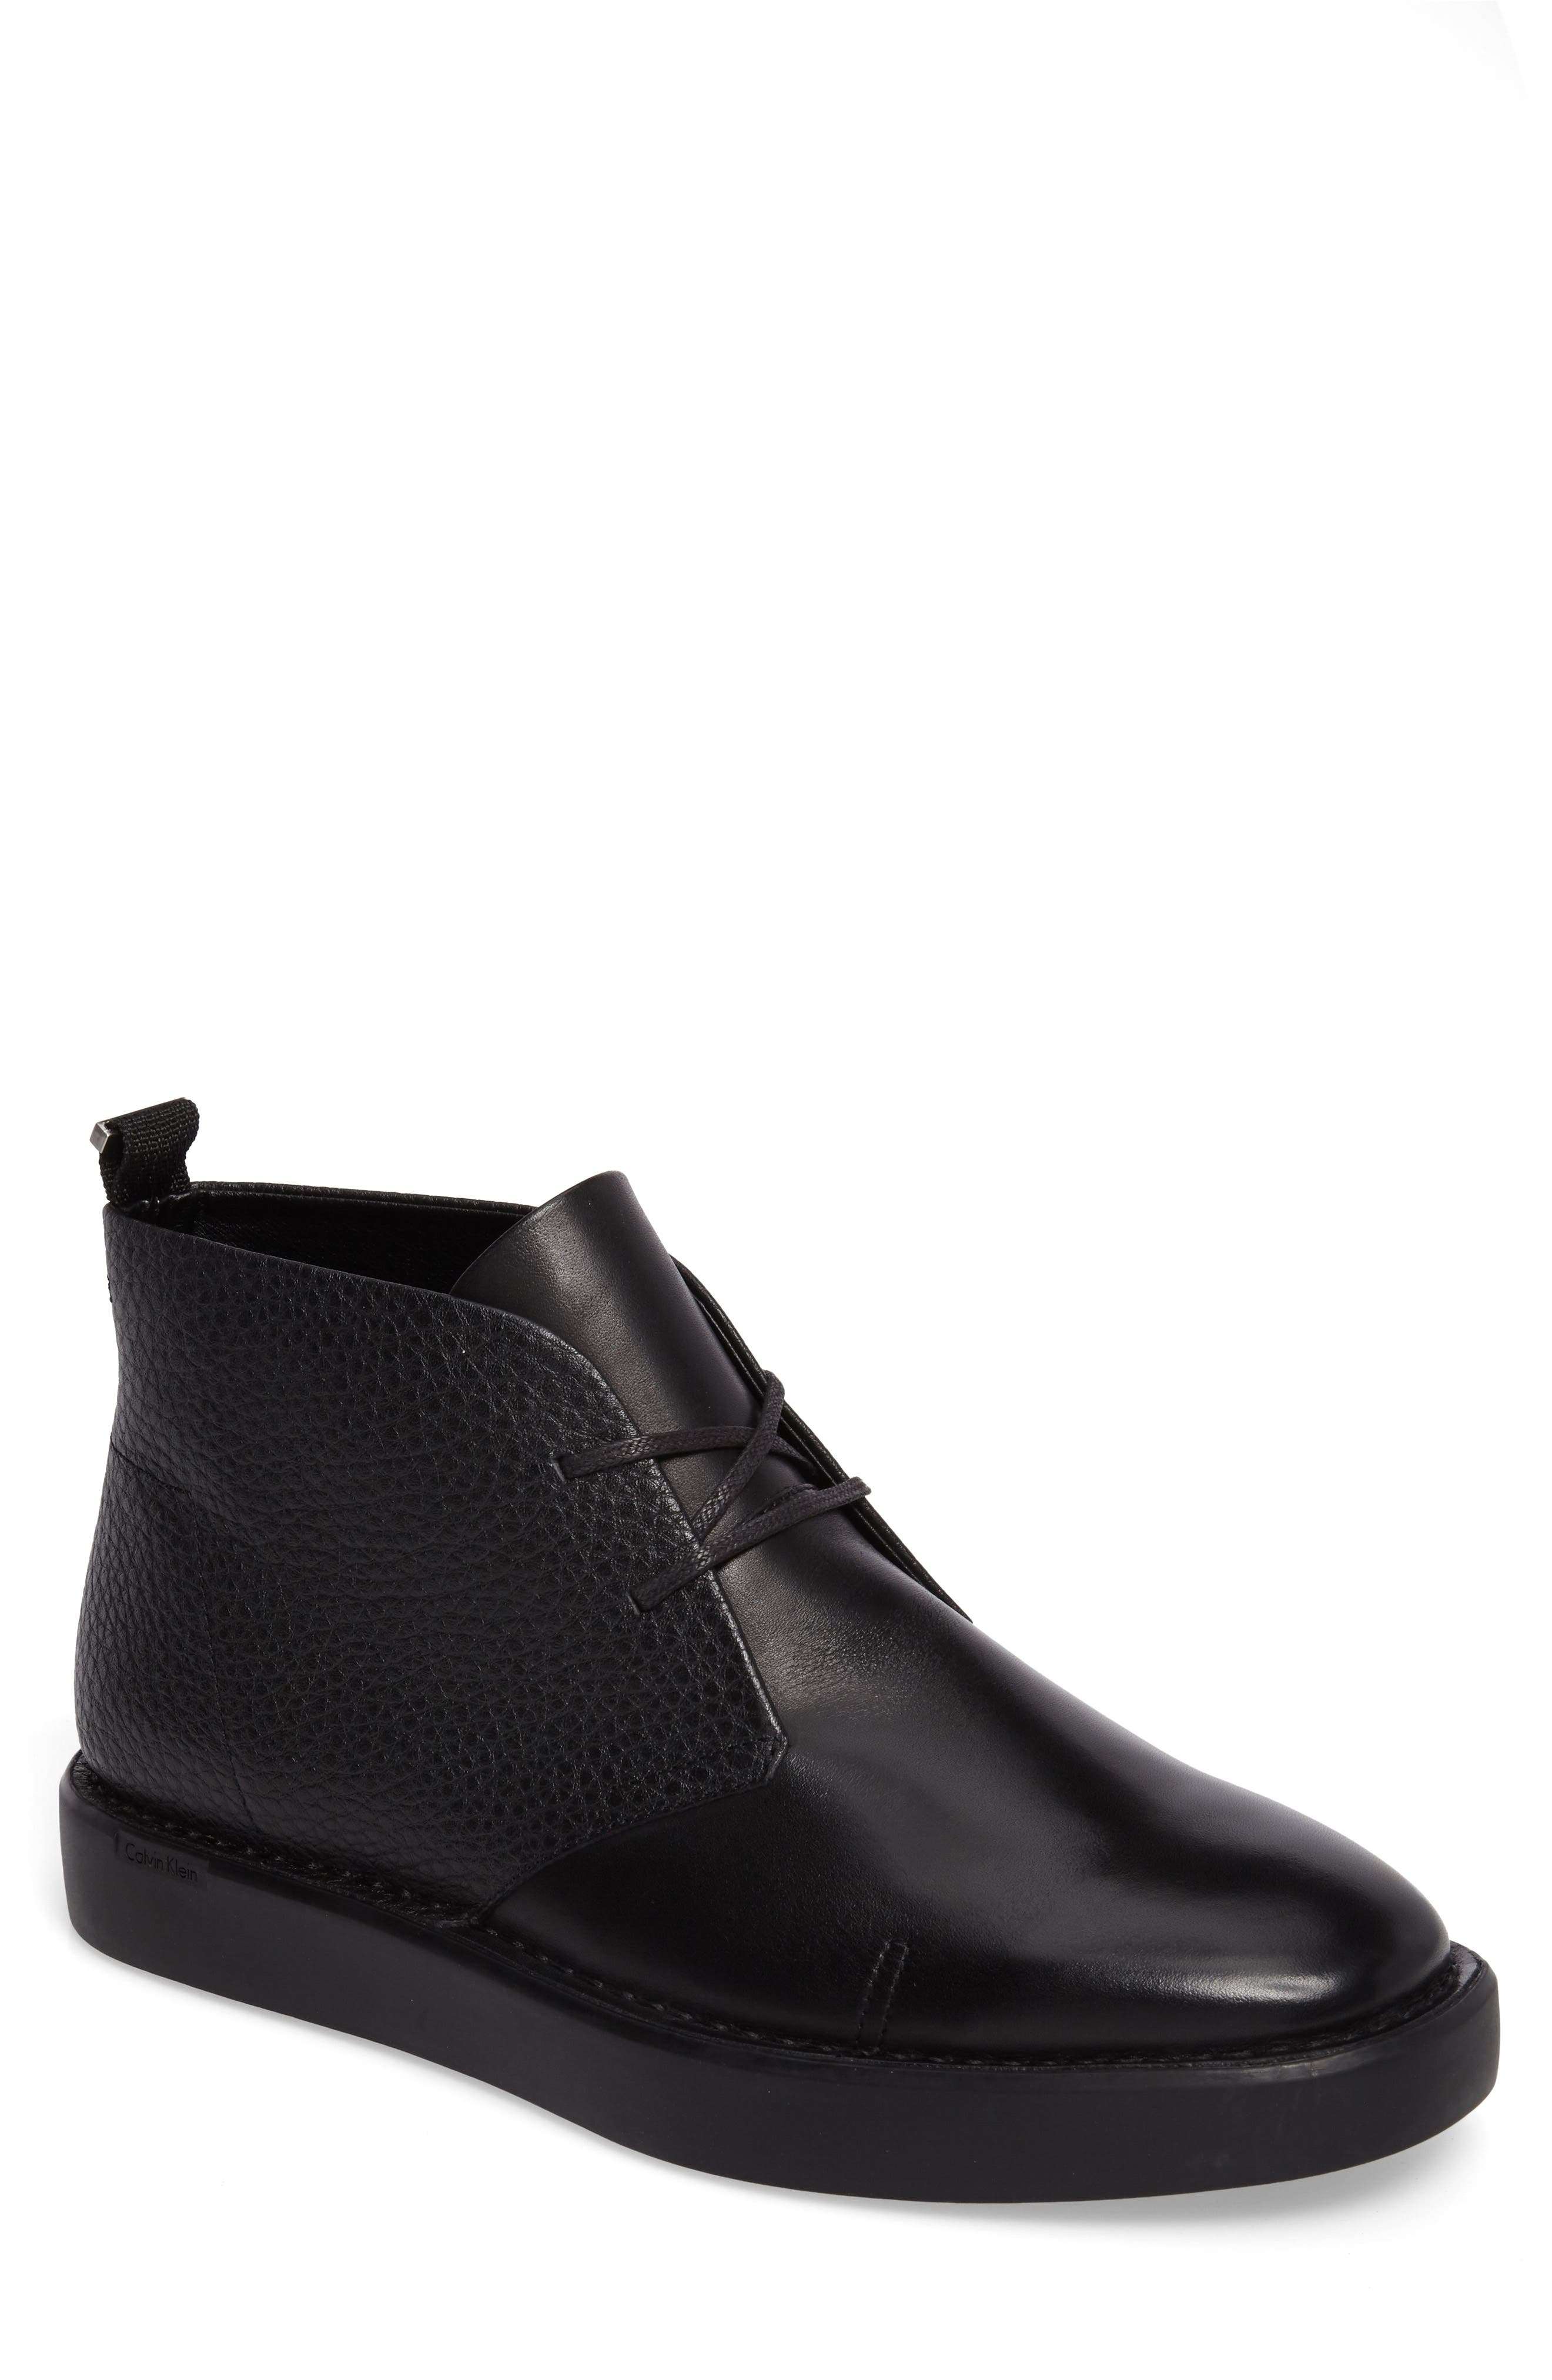 Galway Chukka Boot,                         Main,                         color, Black Suede